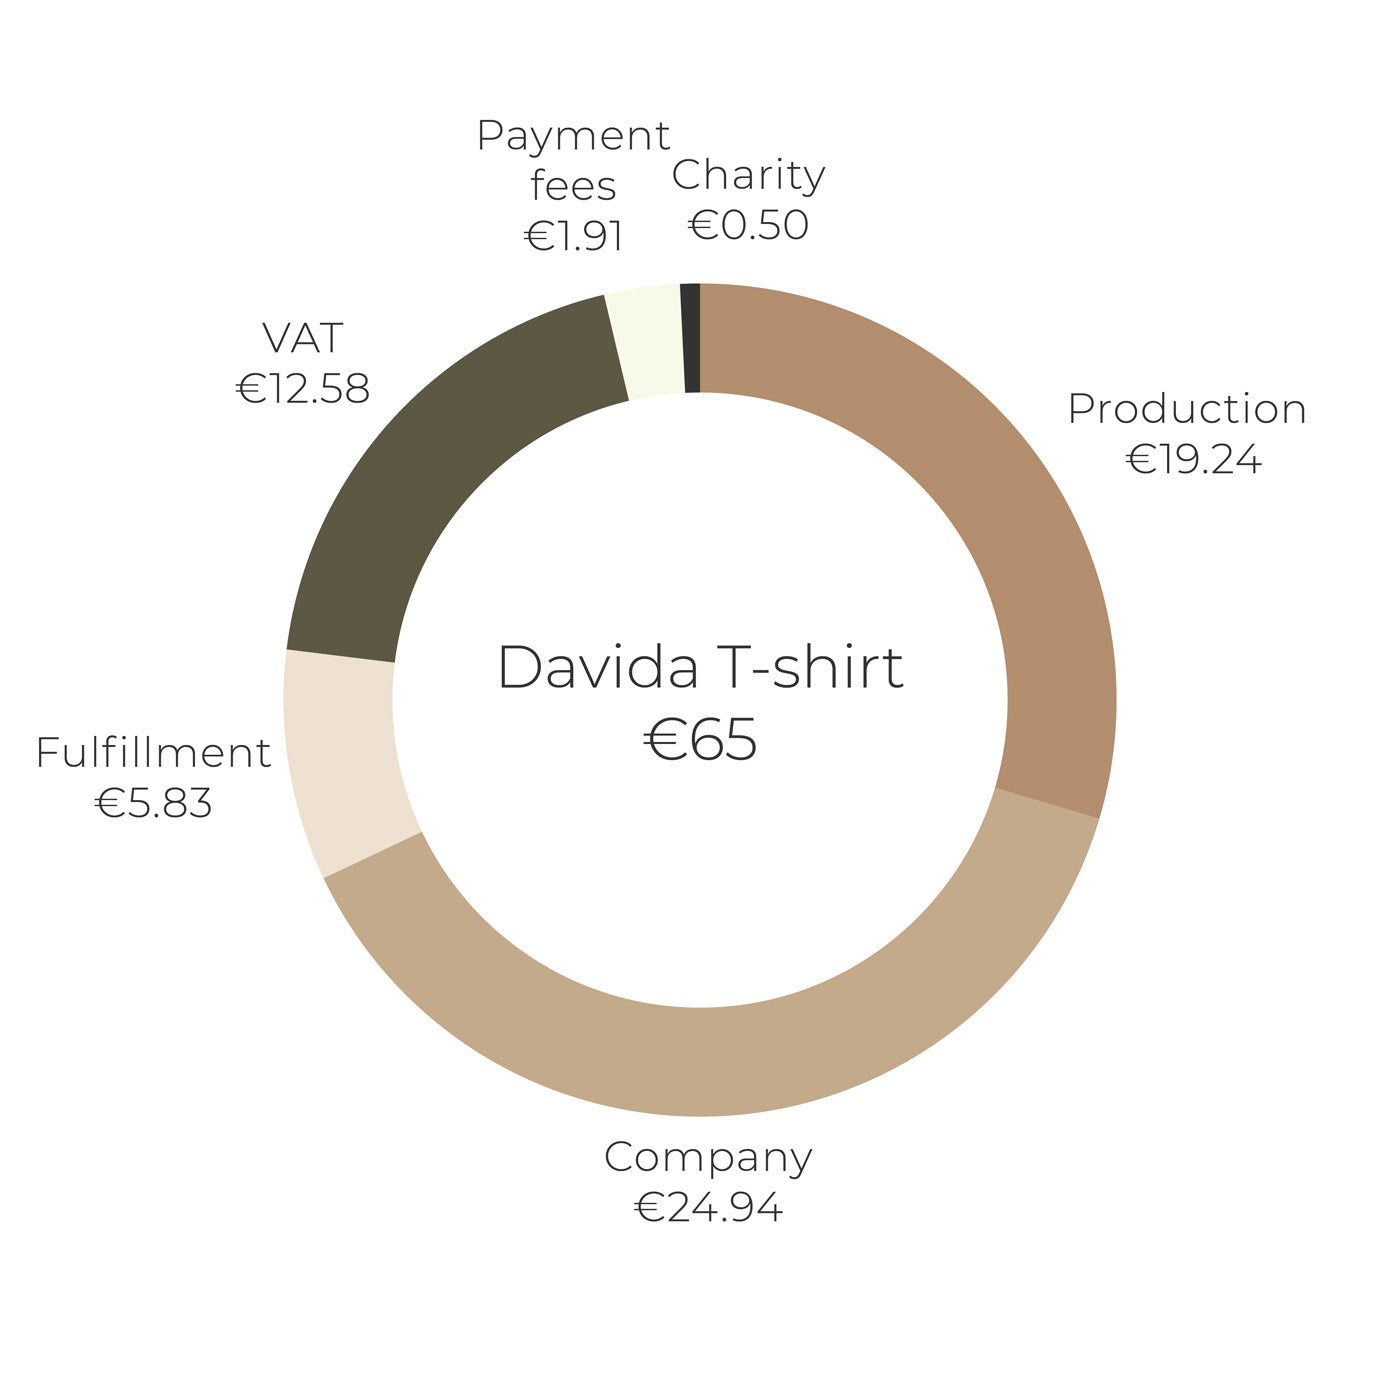 Népra price transparency graph for Davida Tshirt